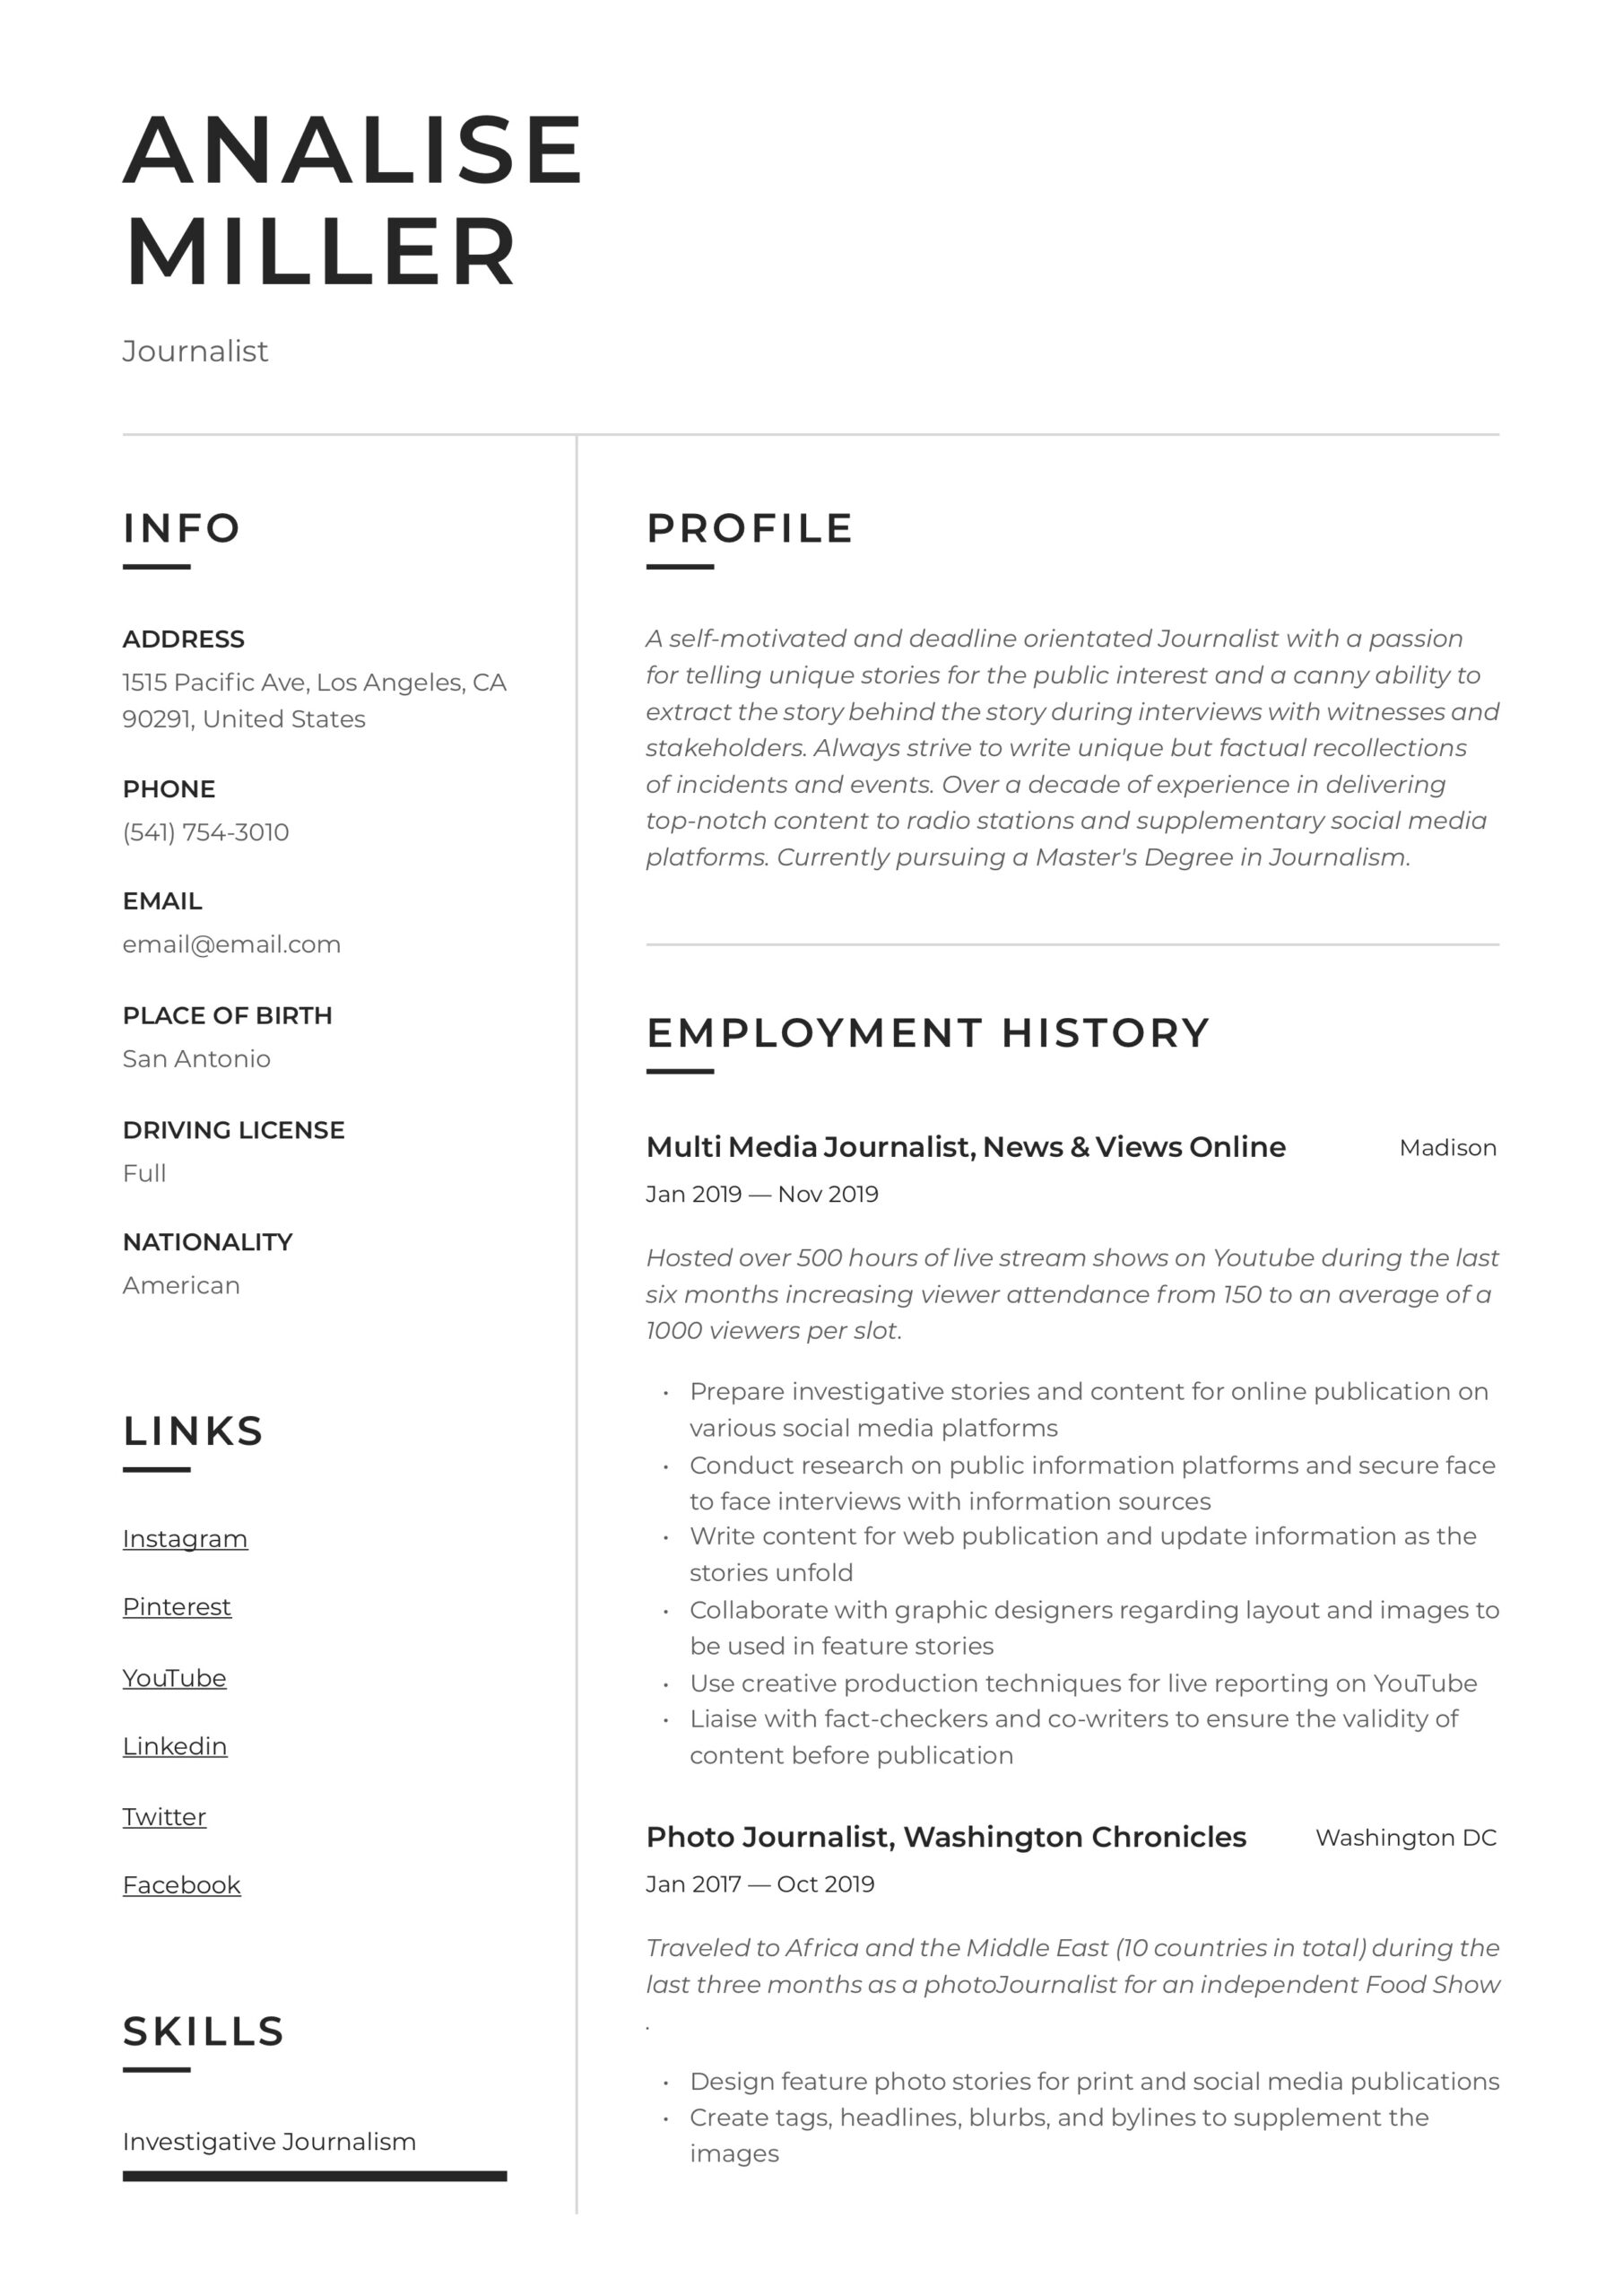 journalist resume writing guide templates journalism skills for caregiver examples coo Resume Journalism Skills For Resume